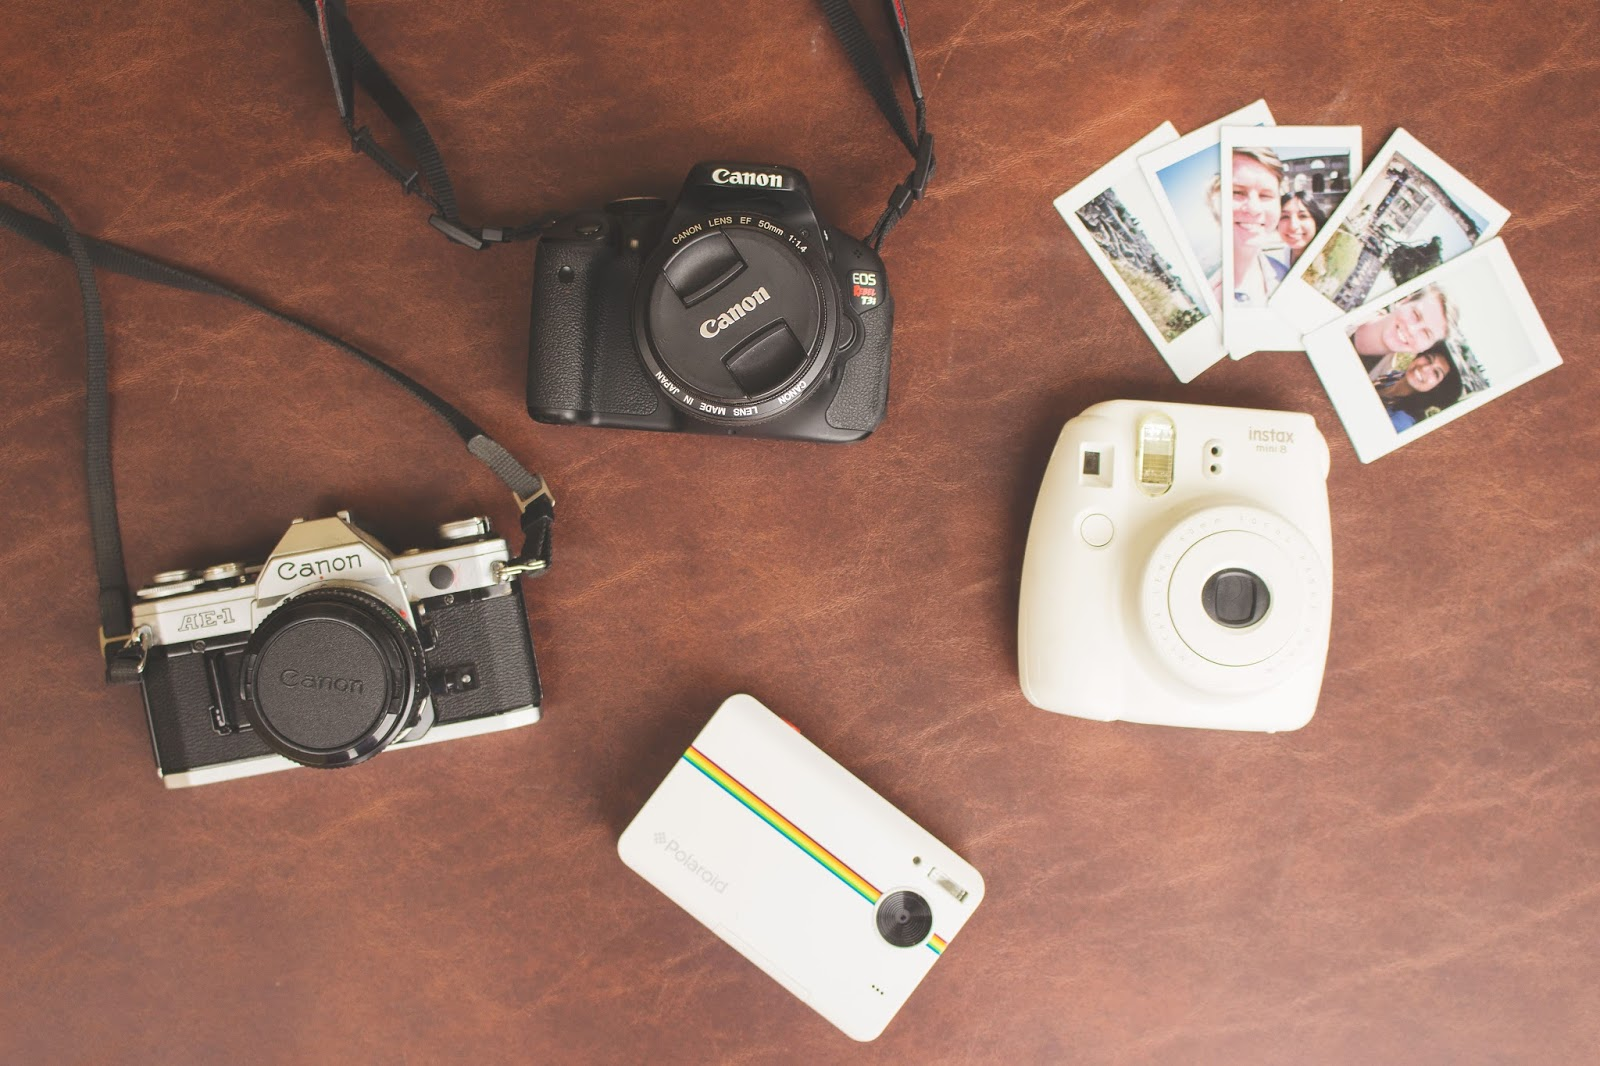 Perfect gift for travelers is a camera | Wanderlust polaroid canon vintage | The Wanderful Soul Blog